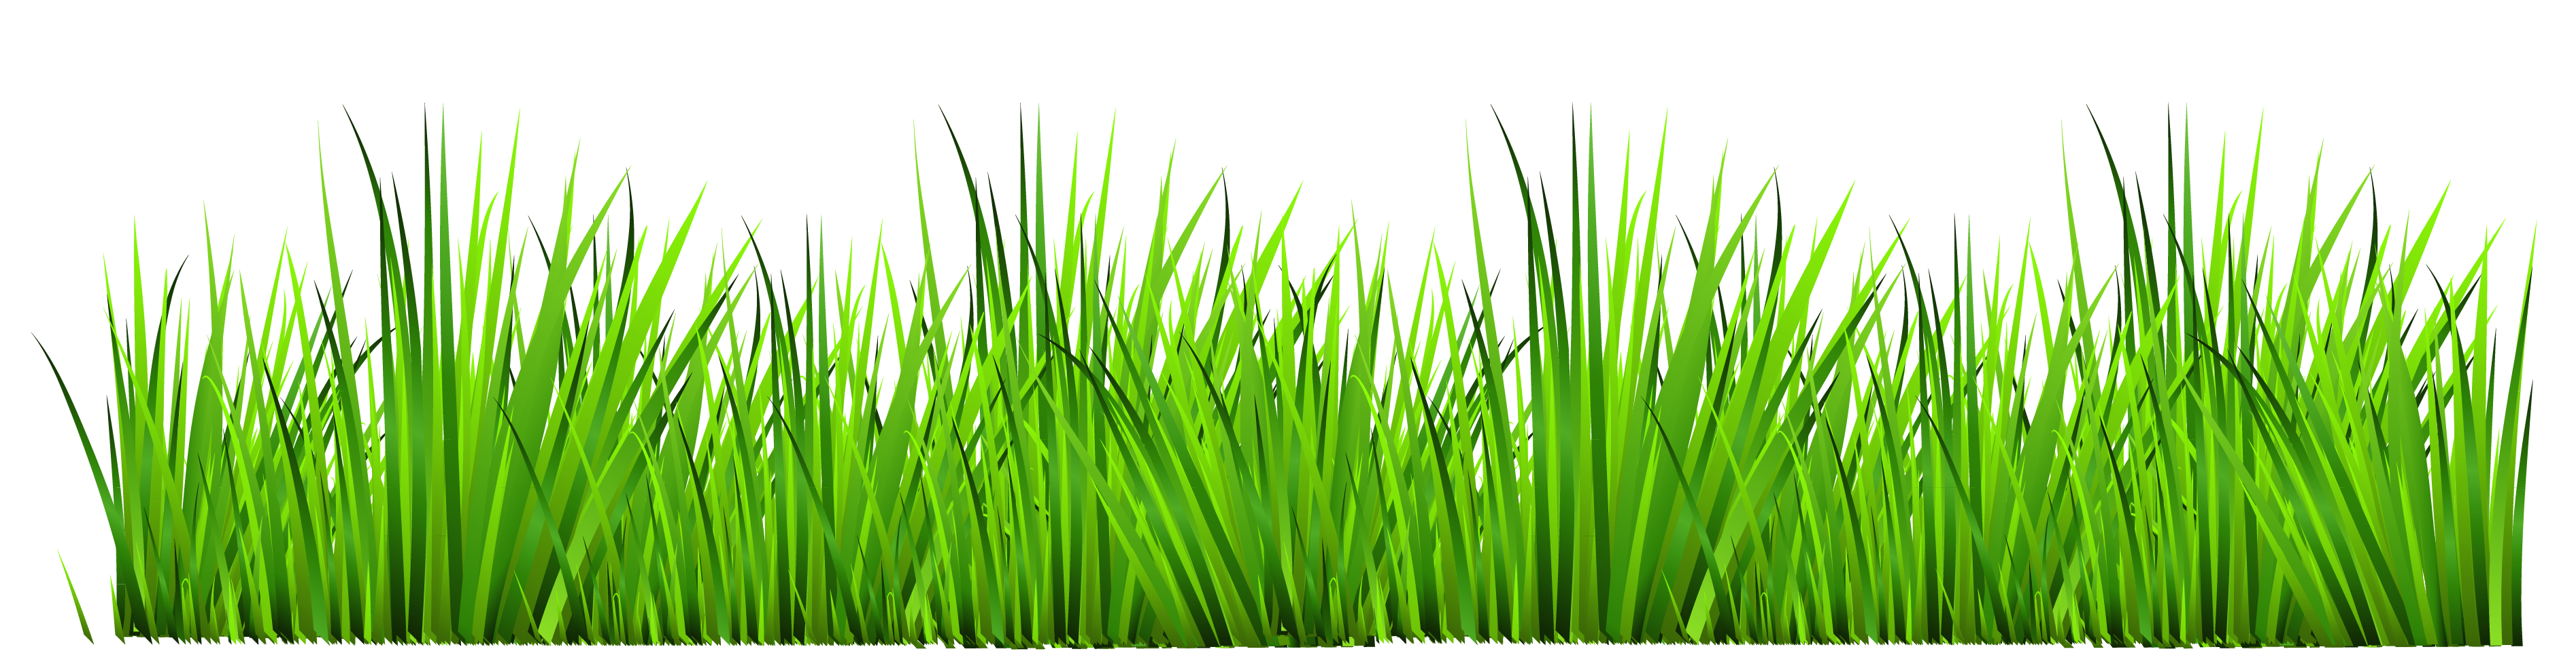 Ground clipart clear background grass. Transparent free clip art